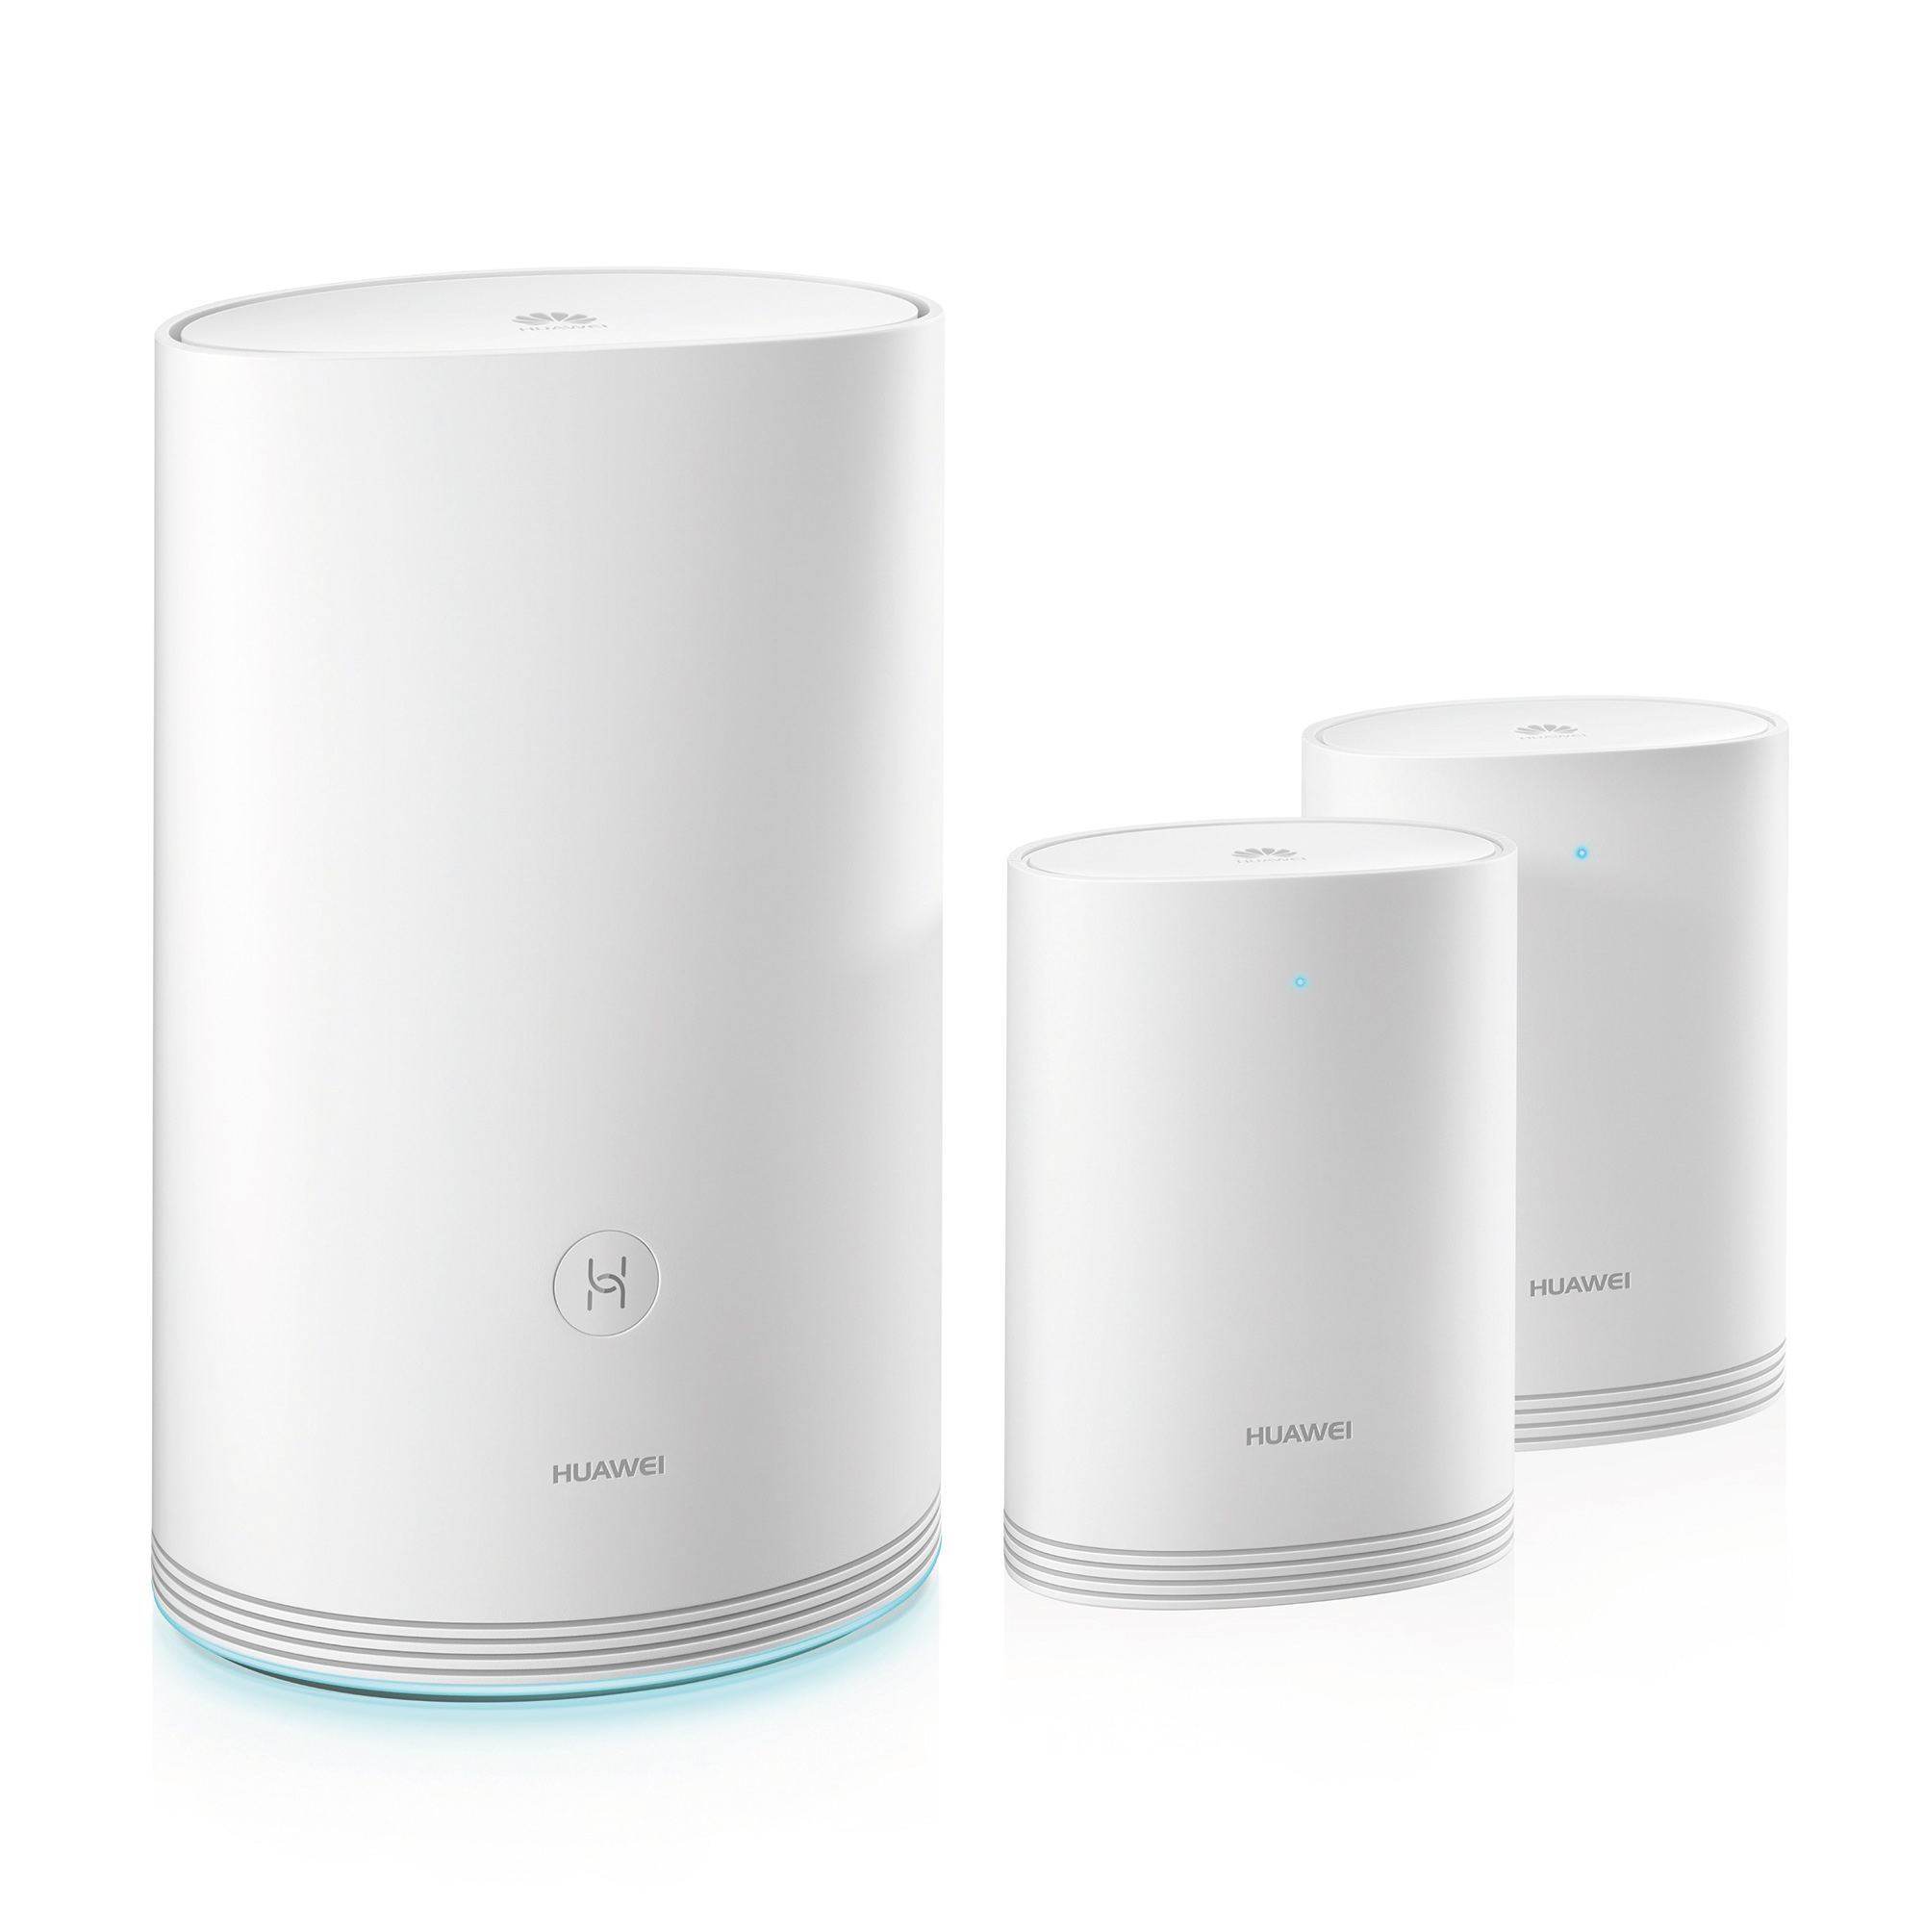 Huawei Releases A Mesh Wi Fi System It Claims Has